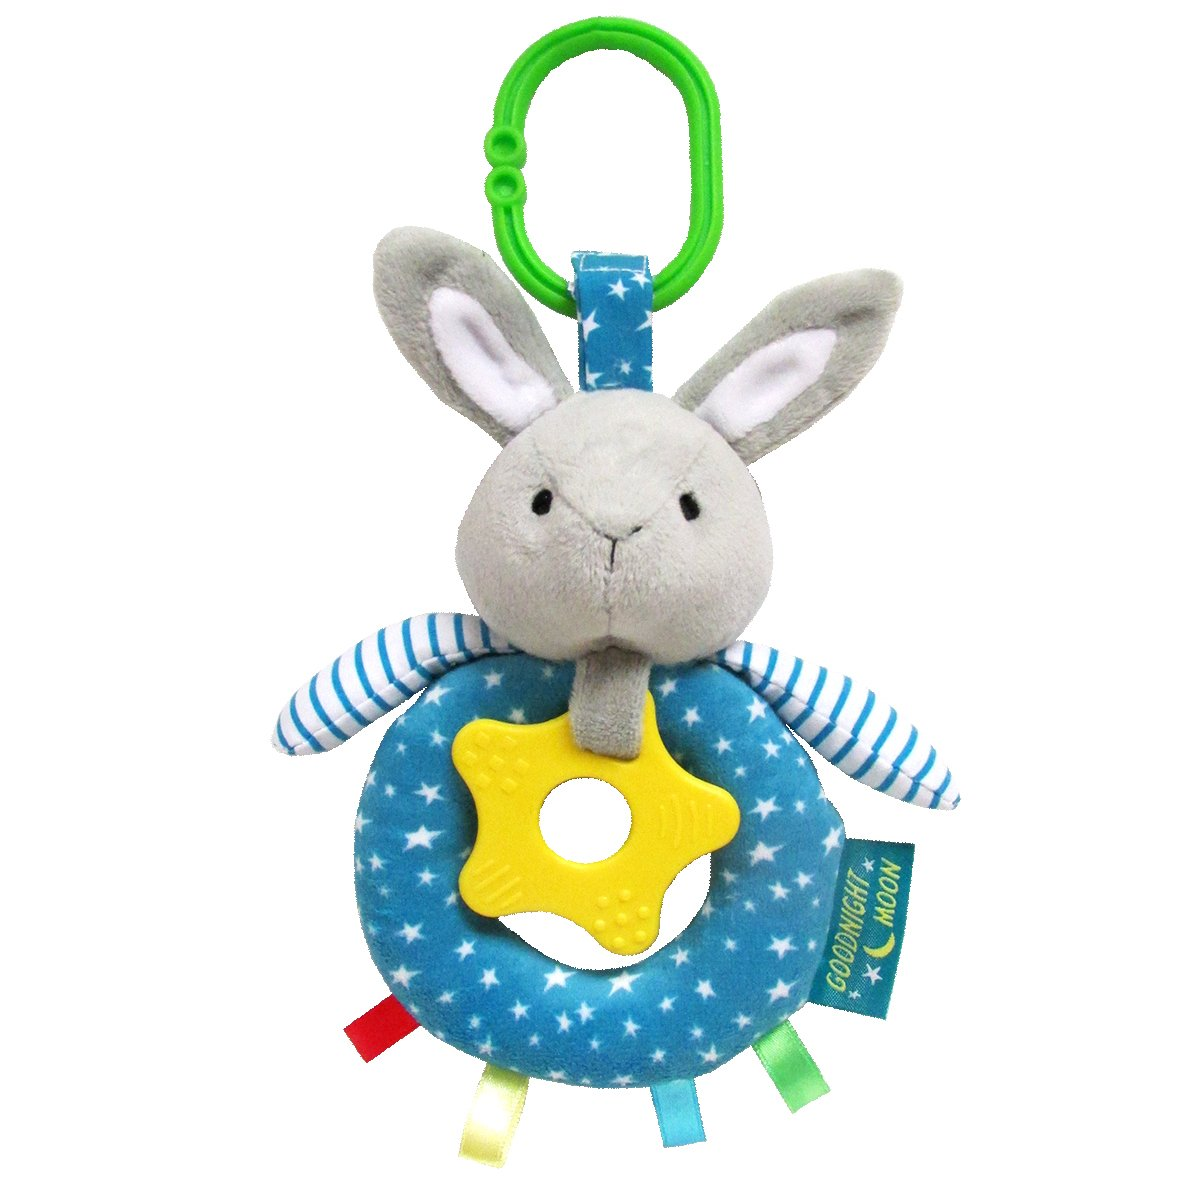 Kids Preferred Goodnight Moon Baby Toy, Rattle Bunny 33361